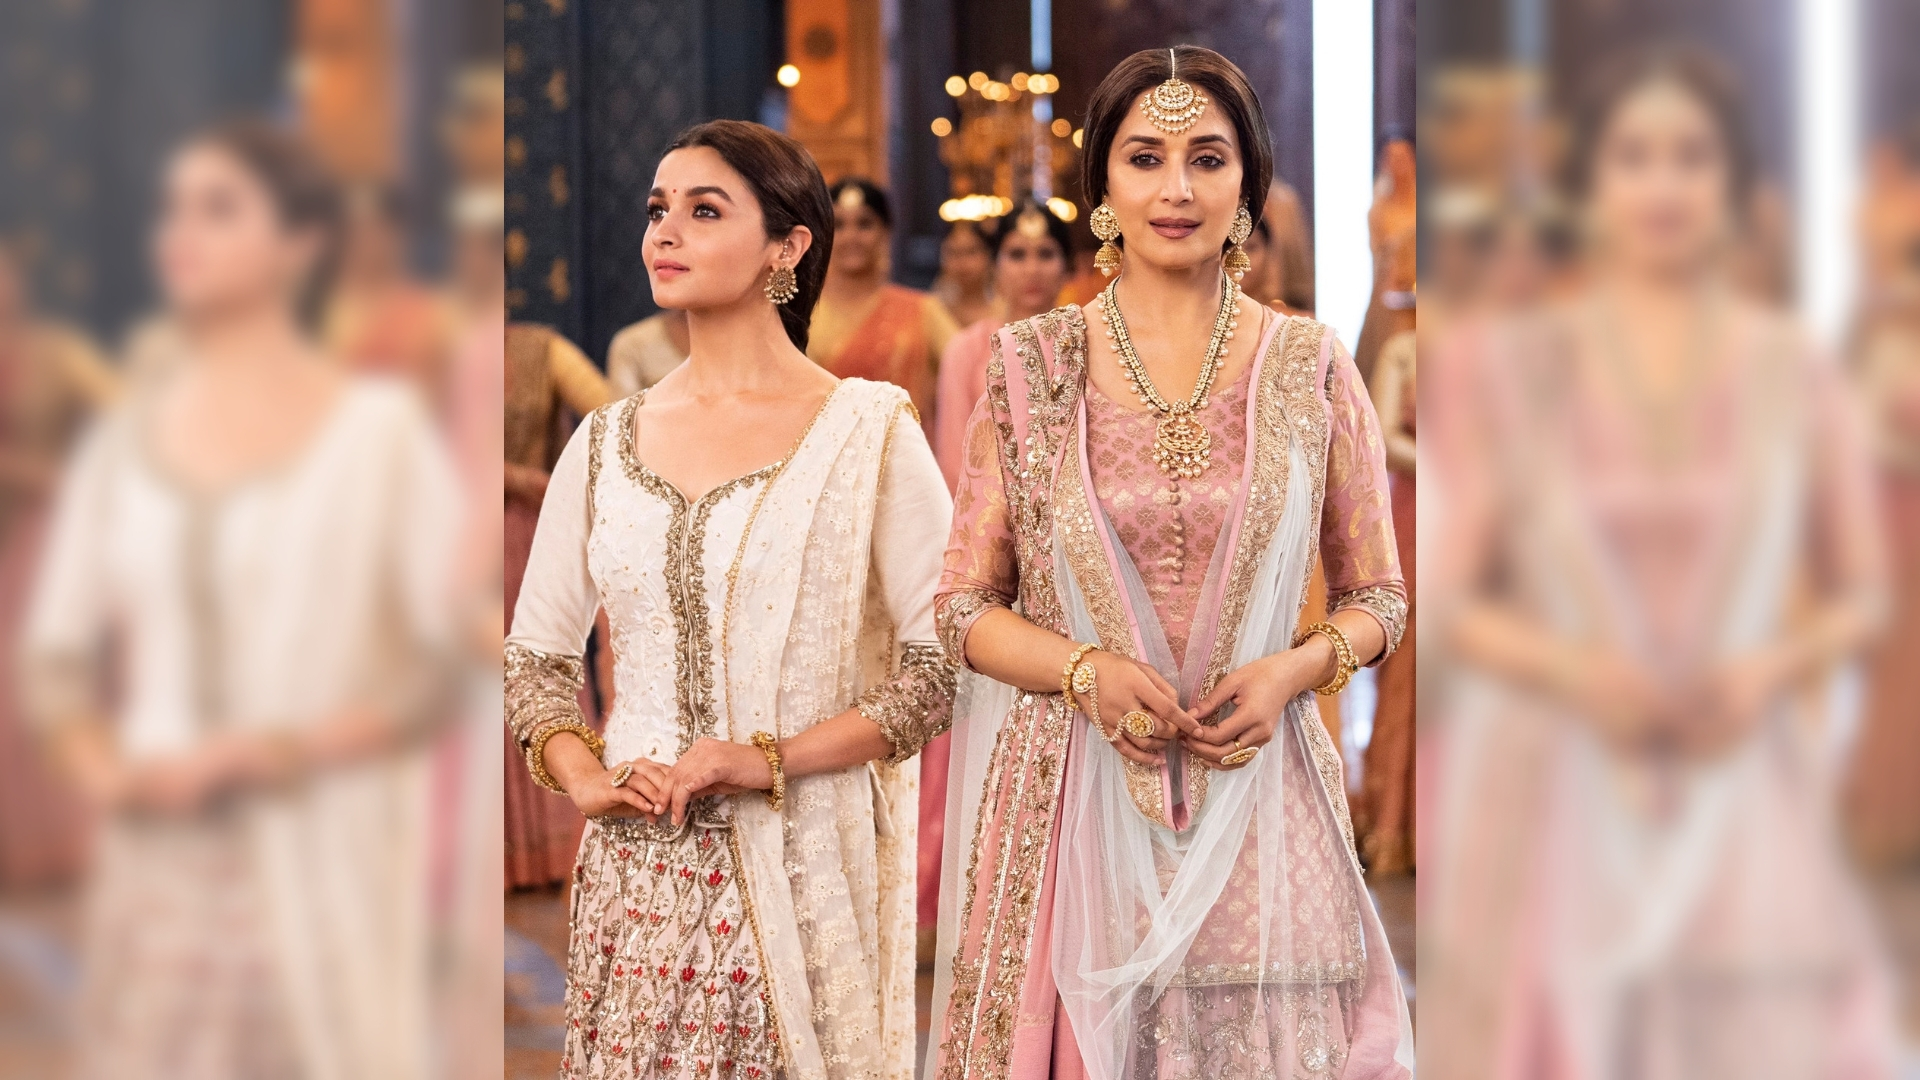 'Kalank' Secures Highest Opening of 2019 With Rs 21.6 Crore at BO